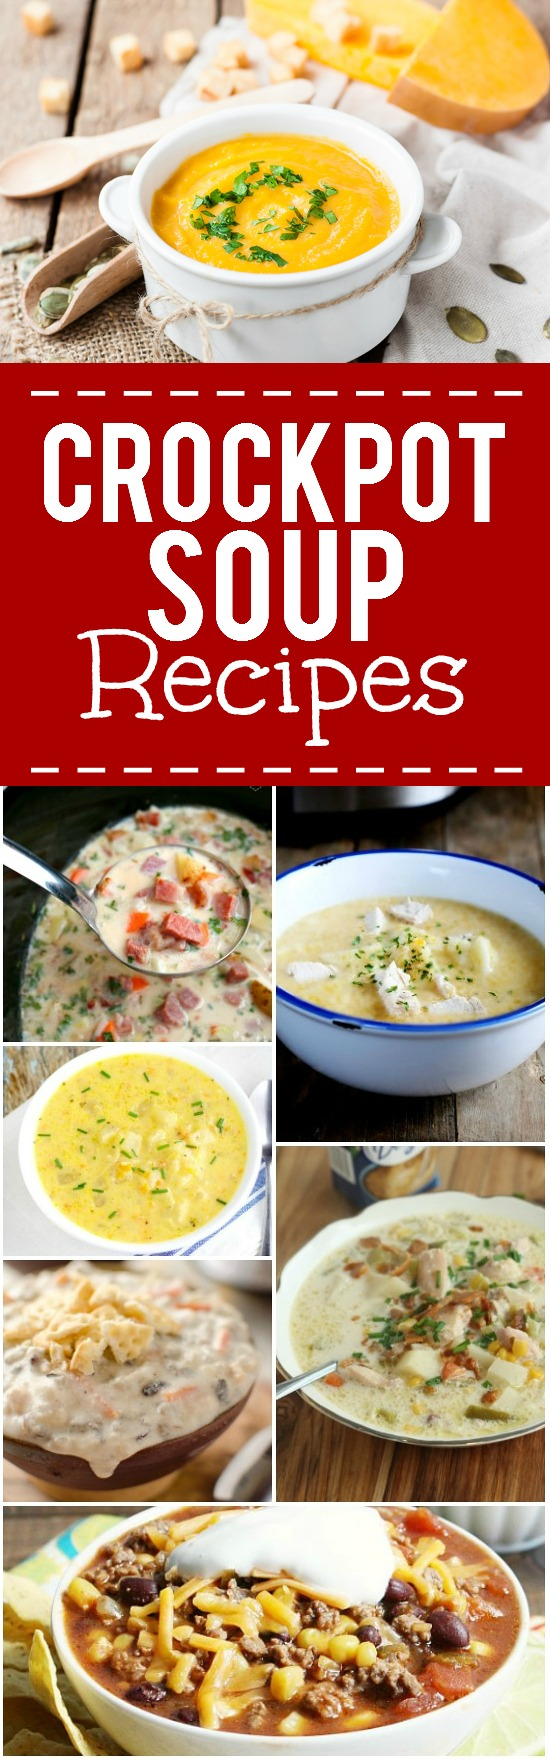 44 Crock Pot Soup Recipes - Find 44 of the BEST Crock Pot Soup recipes to cook and snuggle up with this cold season.  From creamy, cheesy chowders to chunky, hearty stews, there's something for everyone!